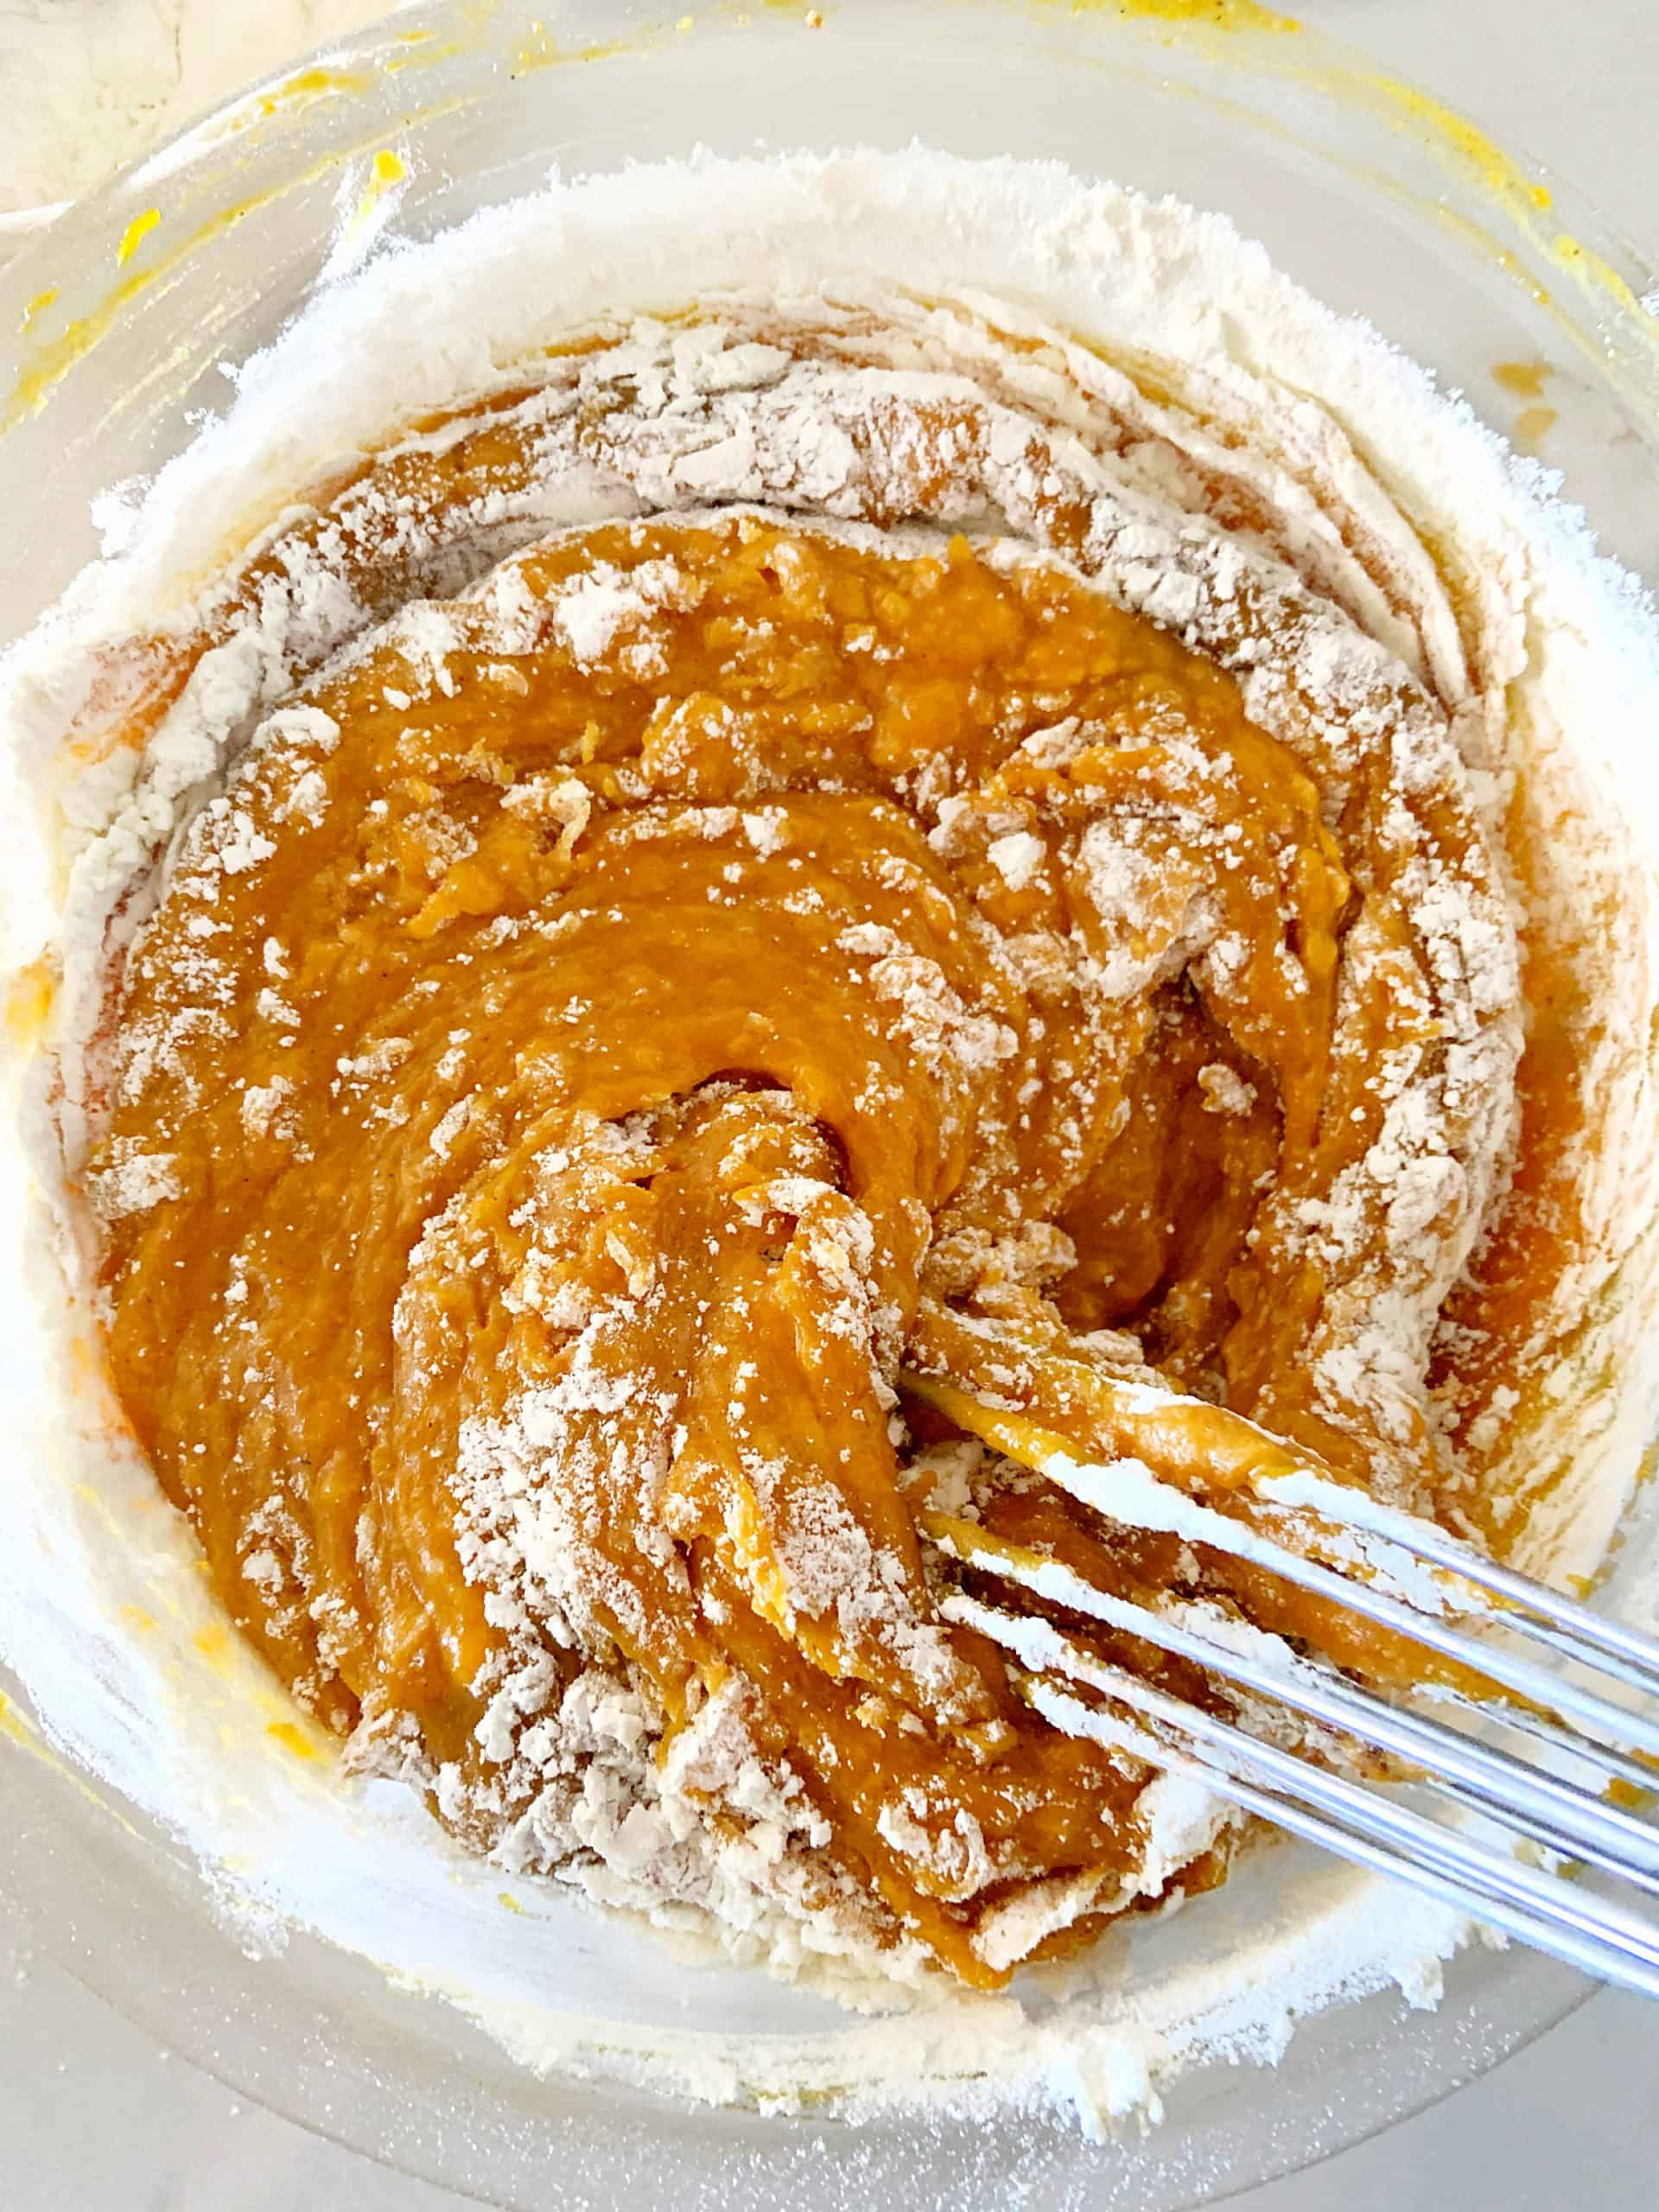 Flour added to pumpkin cake mixture, a metal whisk, glass bowl and off-white surface